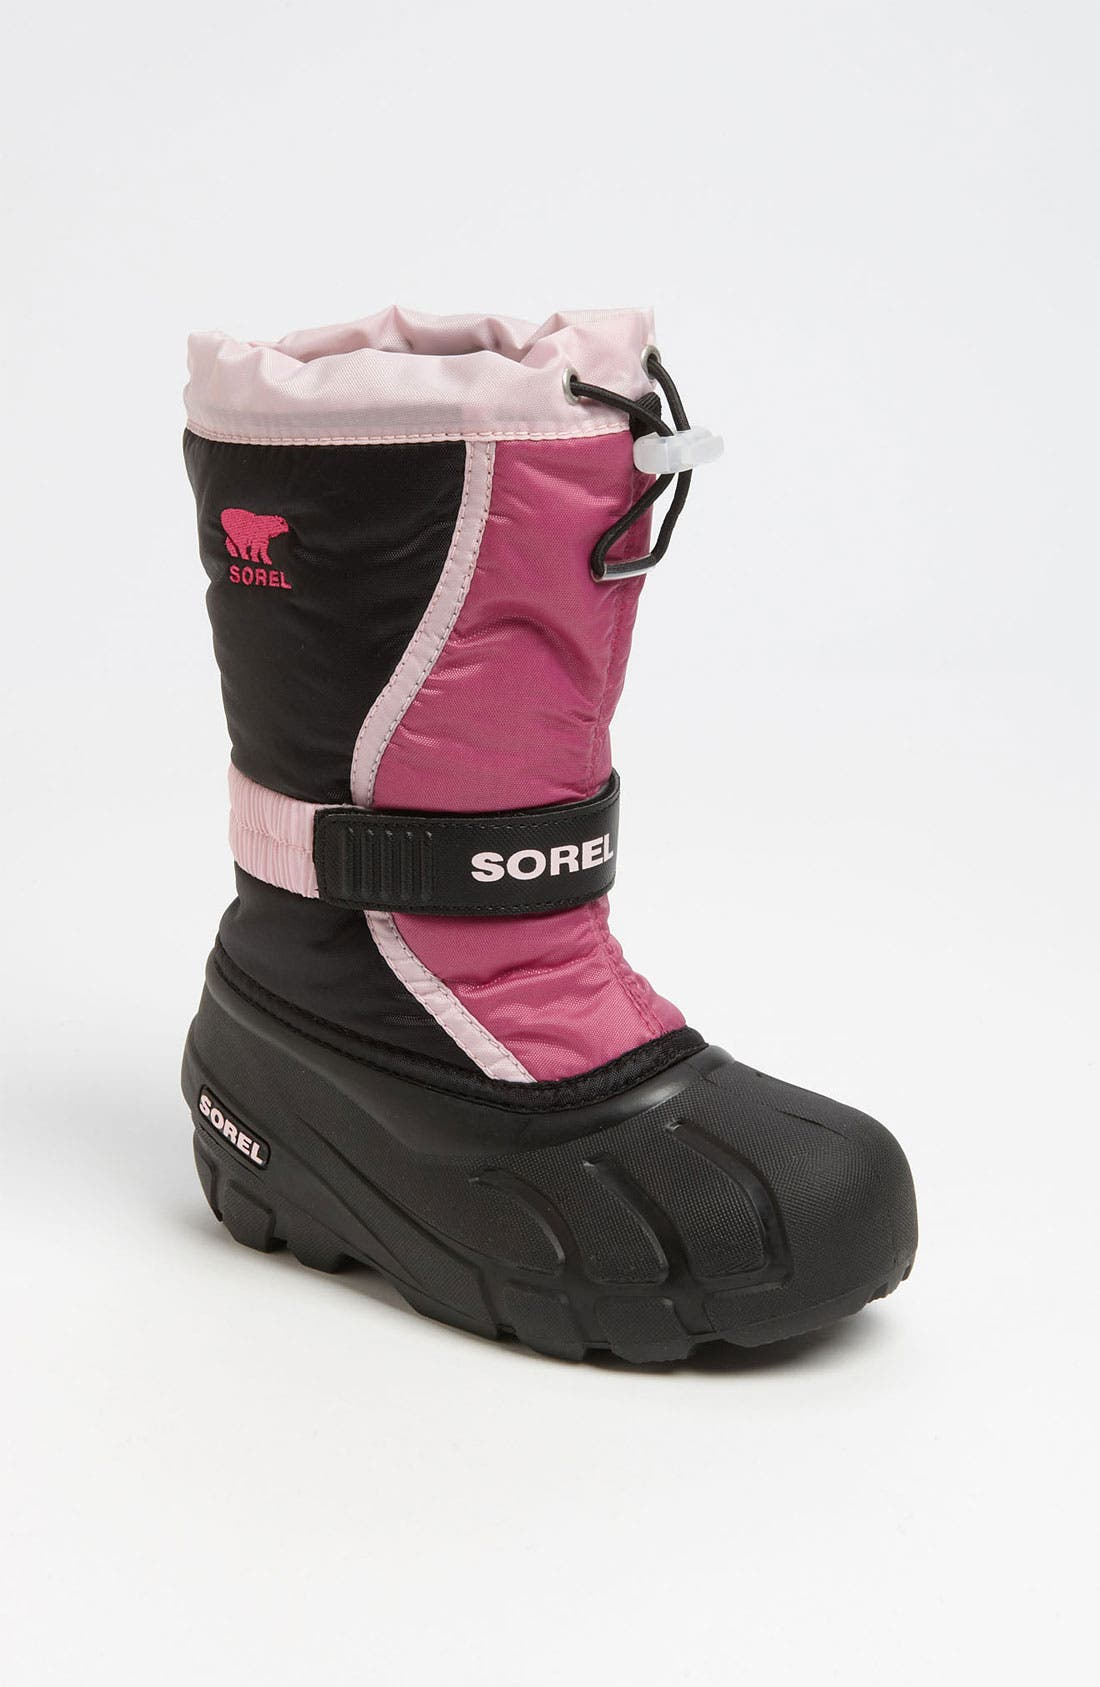 Alternate Image 1 Selected - Sorel 'Flurry' Boot (Toddler, Little Kid & Big Kid)